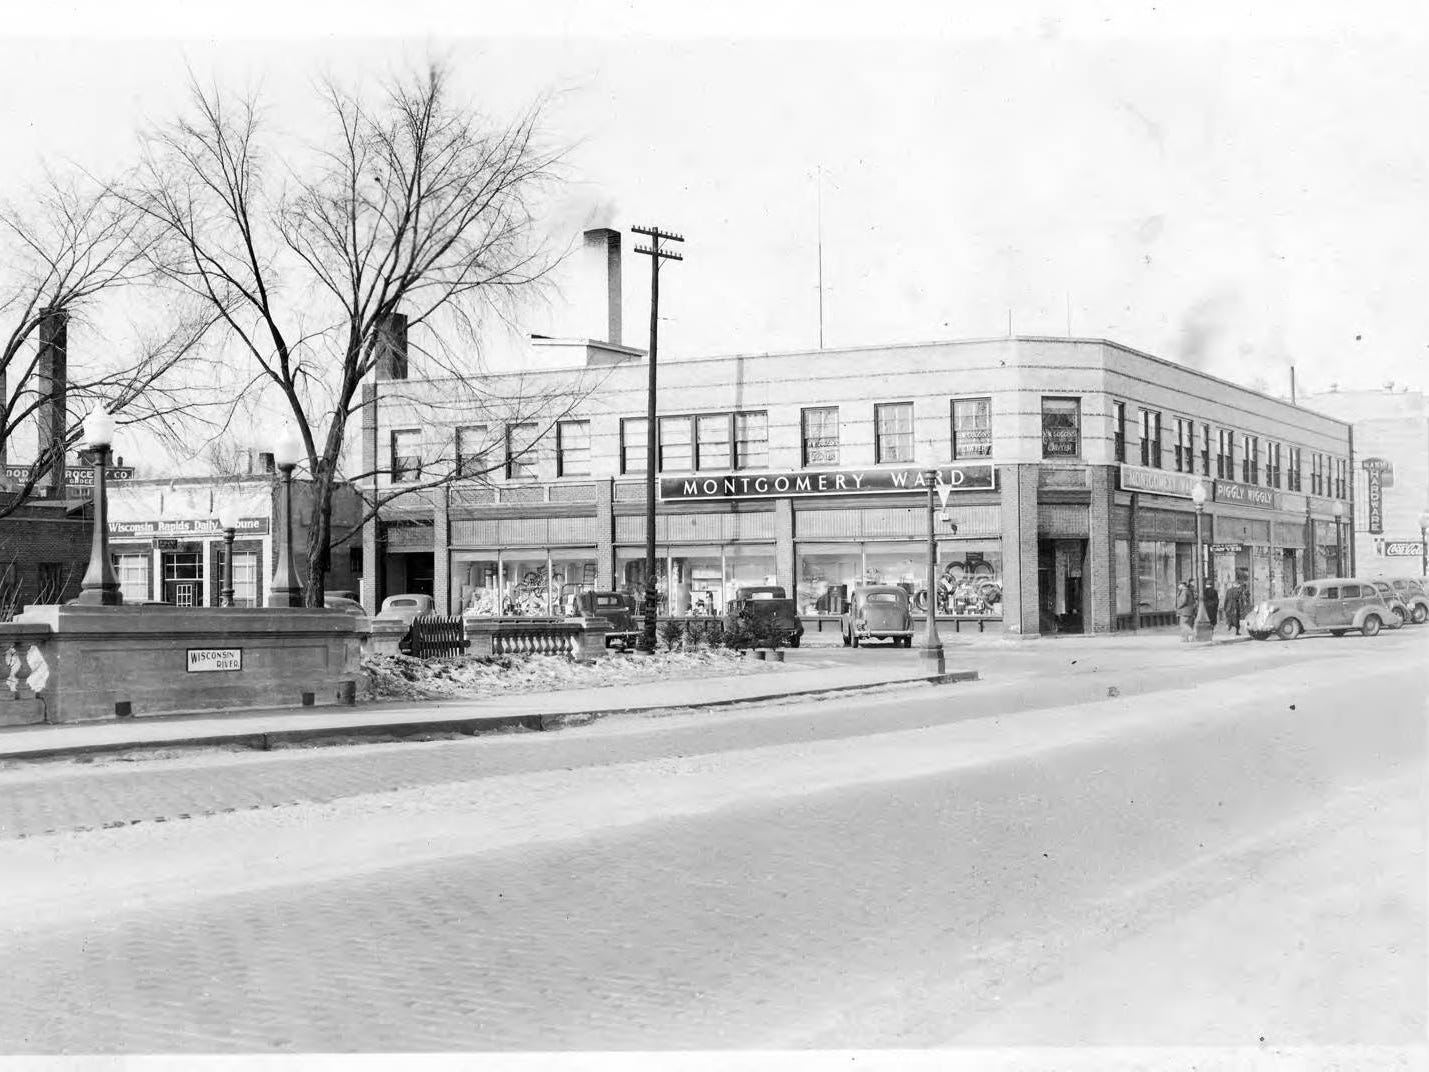 Montgomery Ward and the Piggly Wiggly can be seen from West Grand Avenue in 1937.